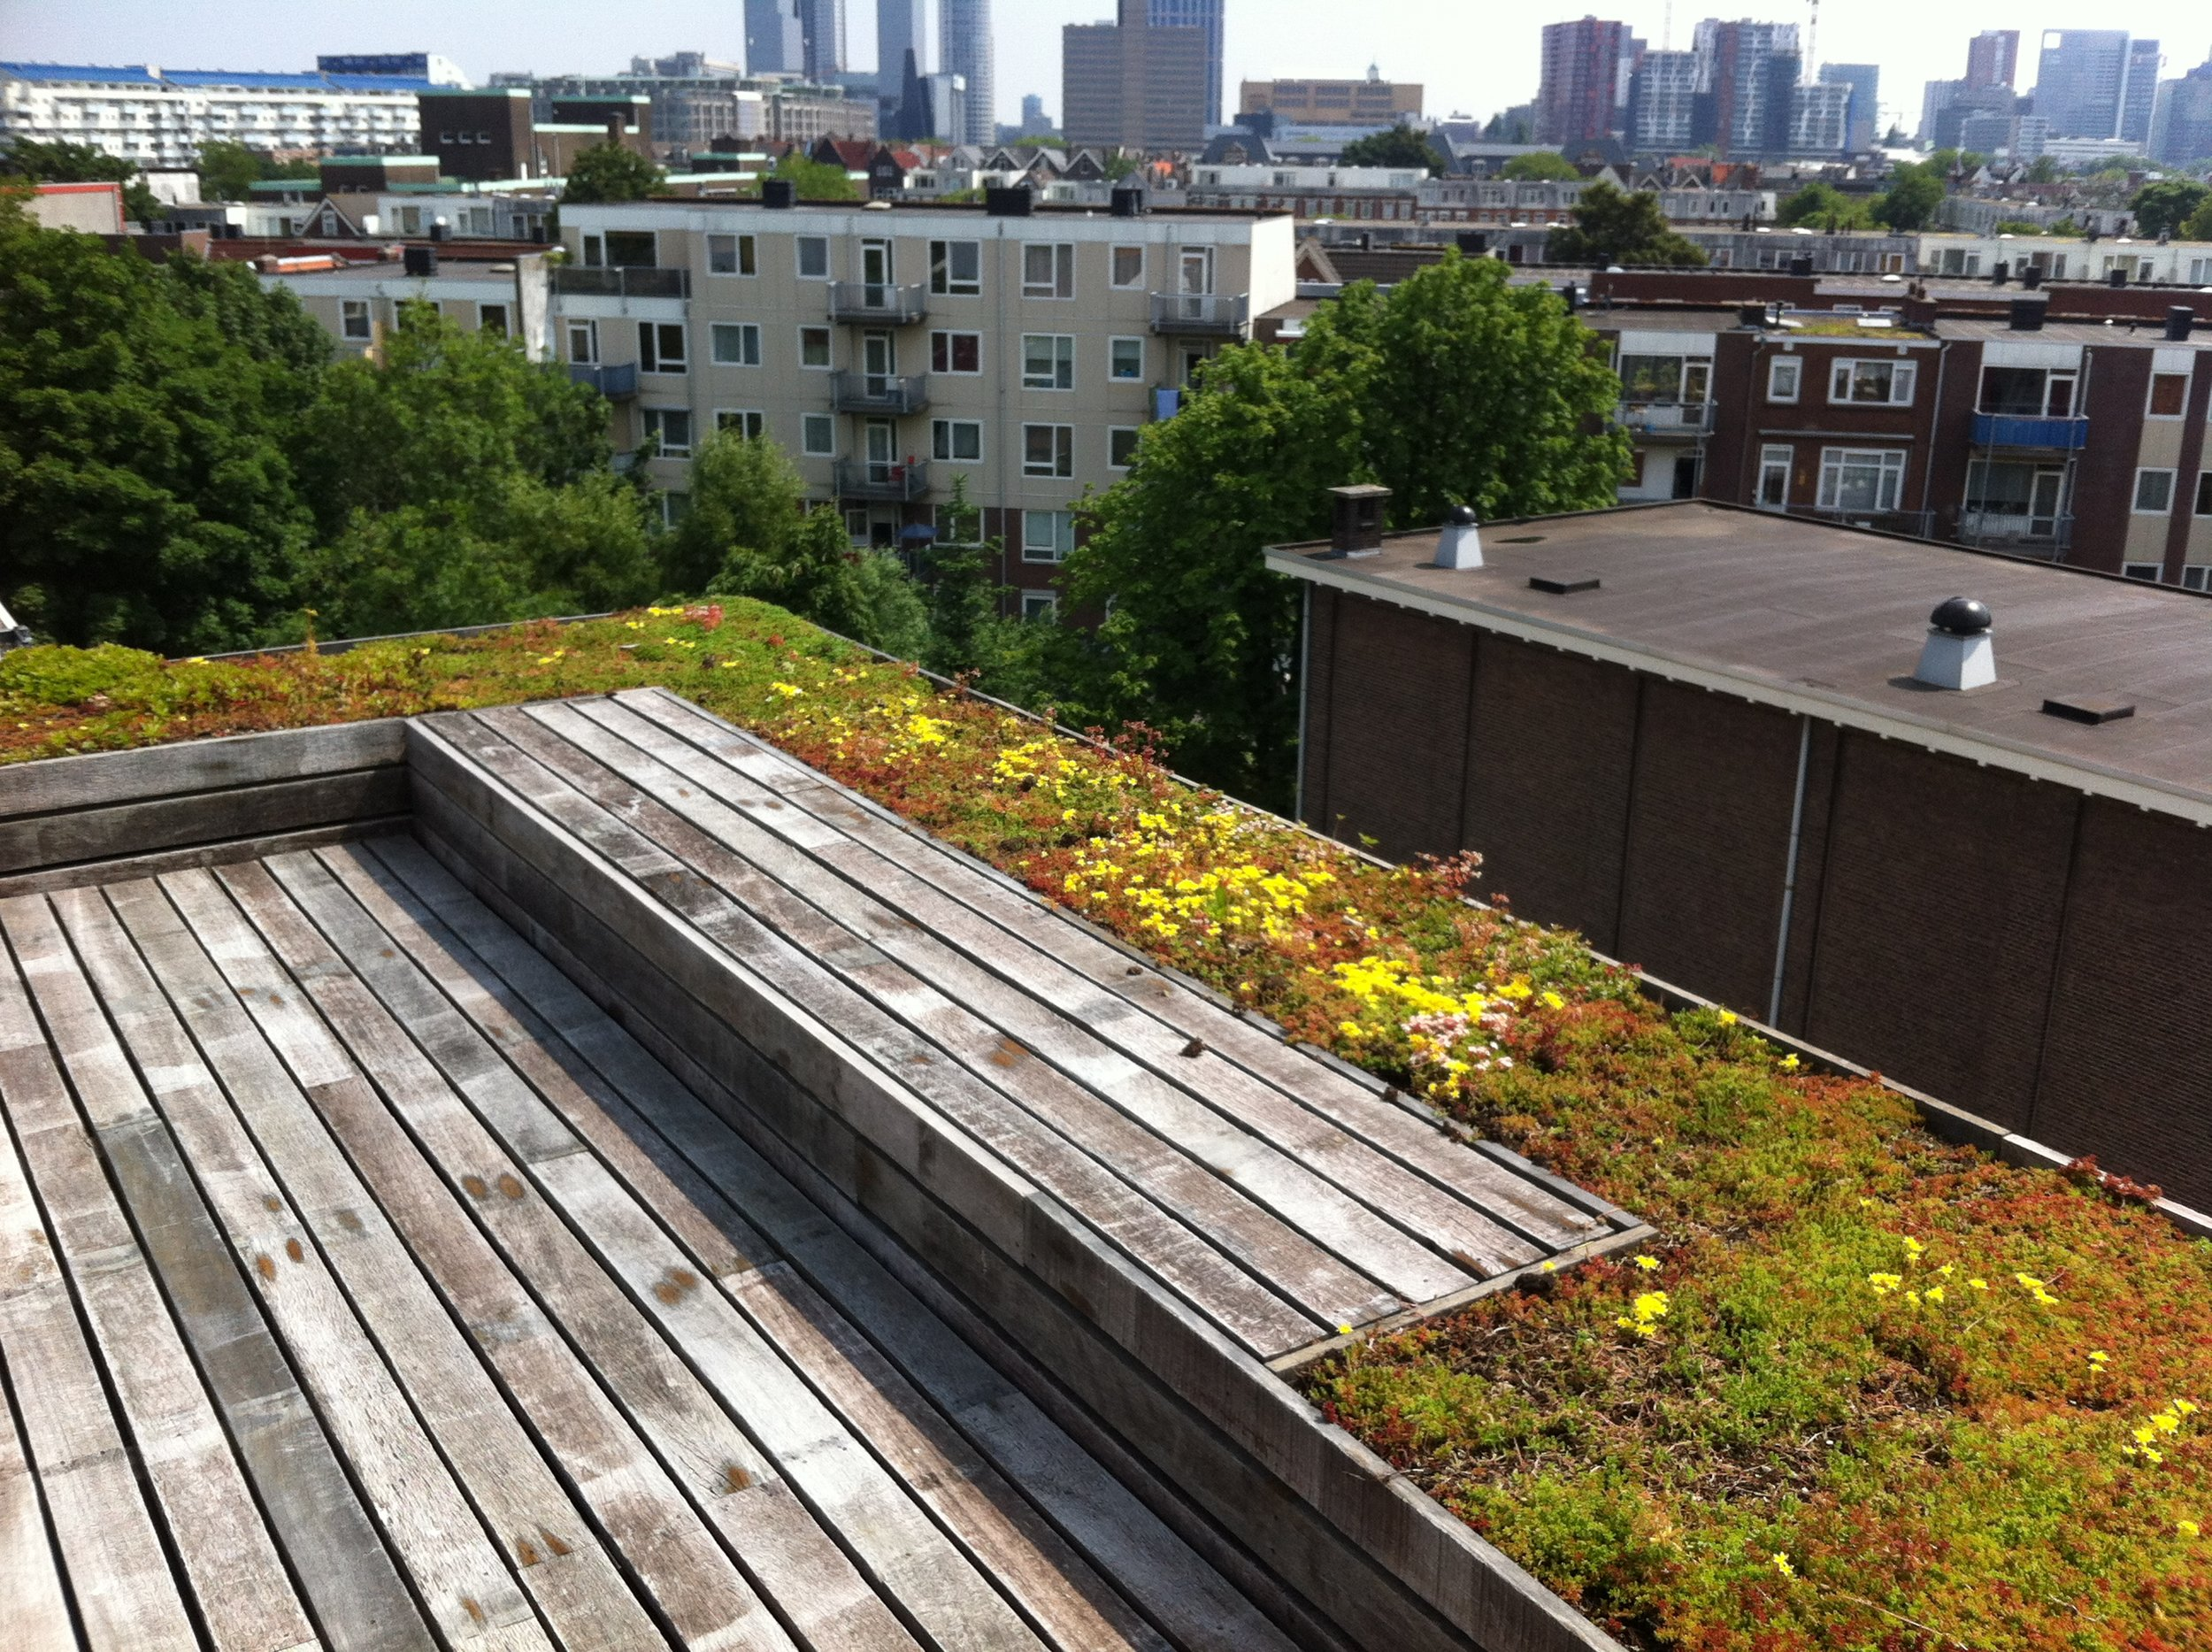 the roof terrace designed by EMMERIK garden design and research is confined within a large elevated green roof making it unnecessary to add a railing